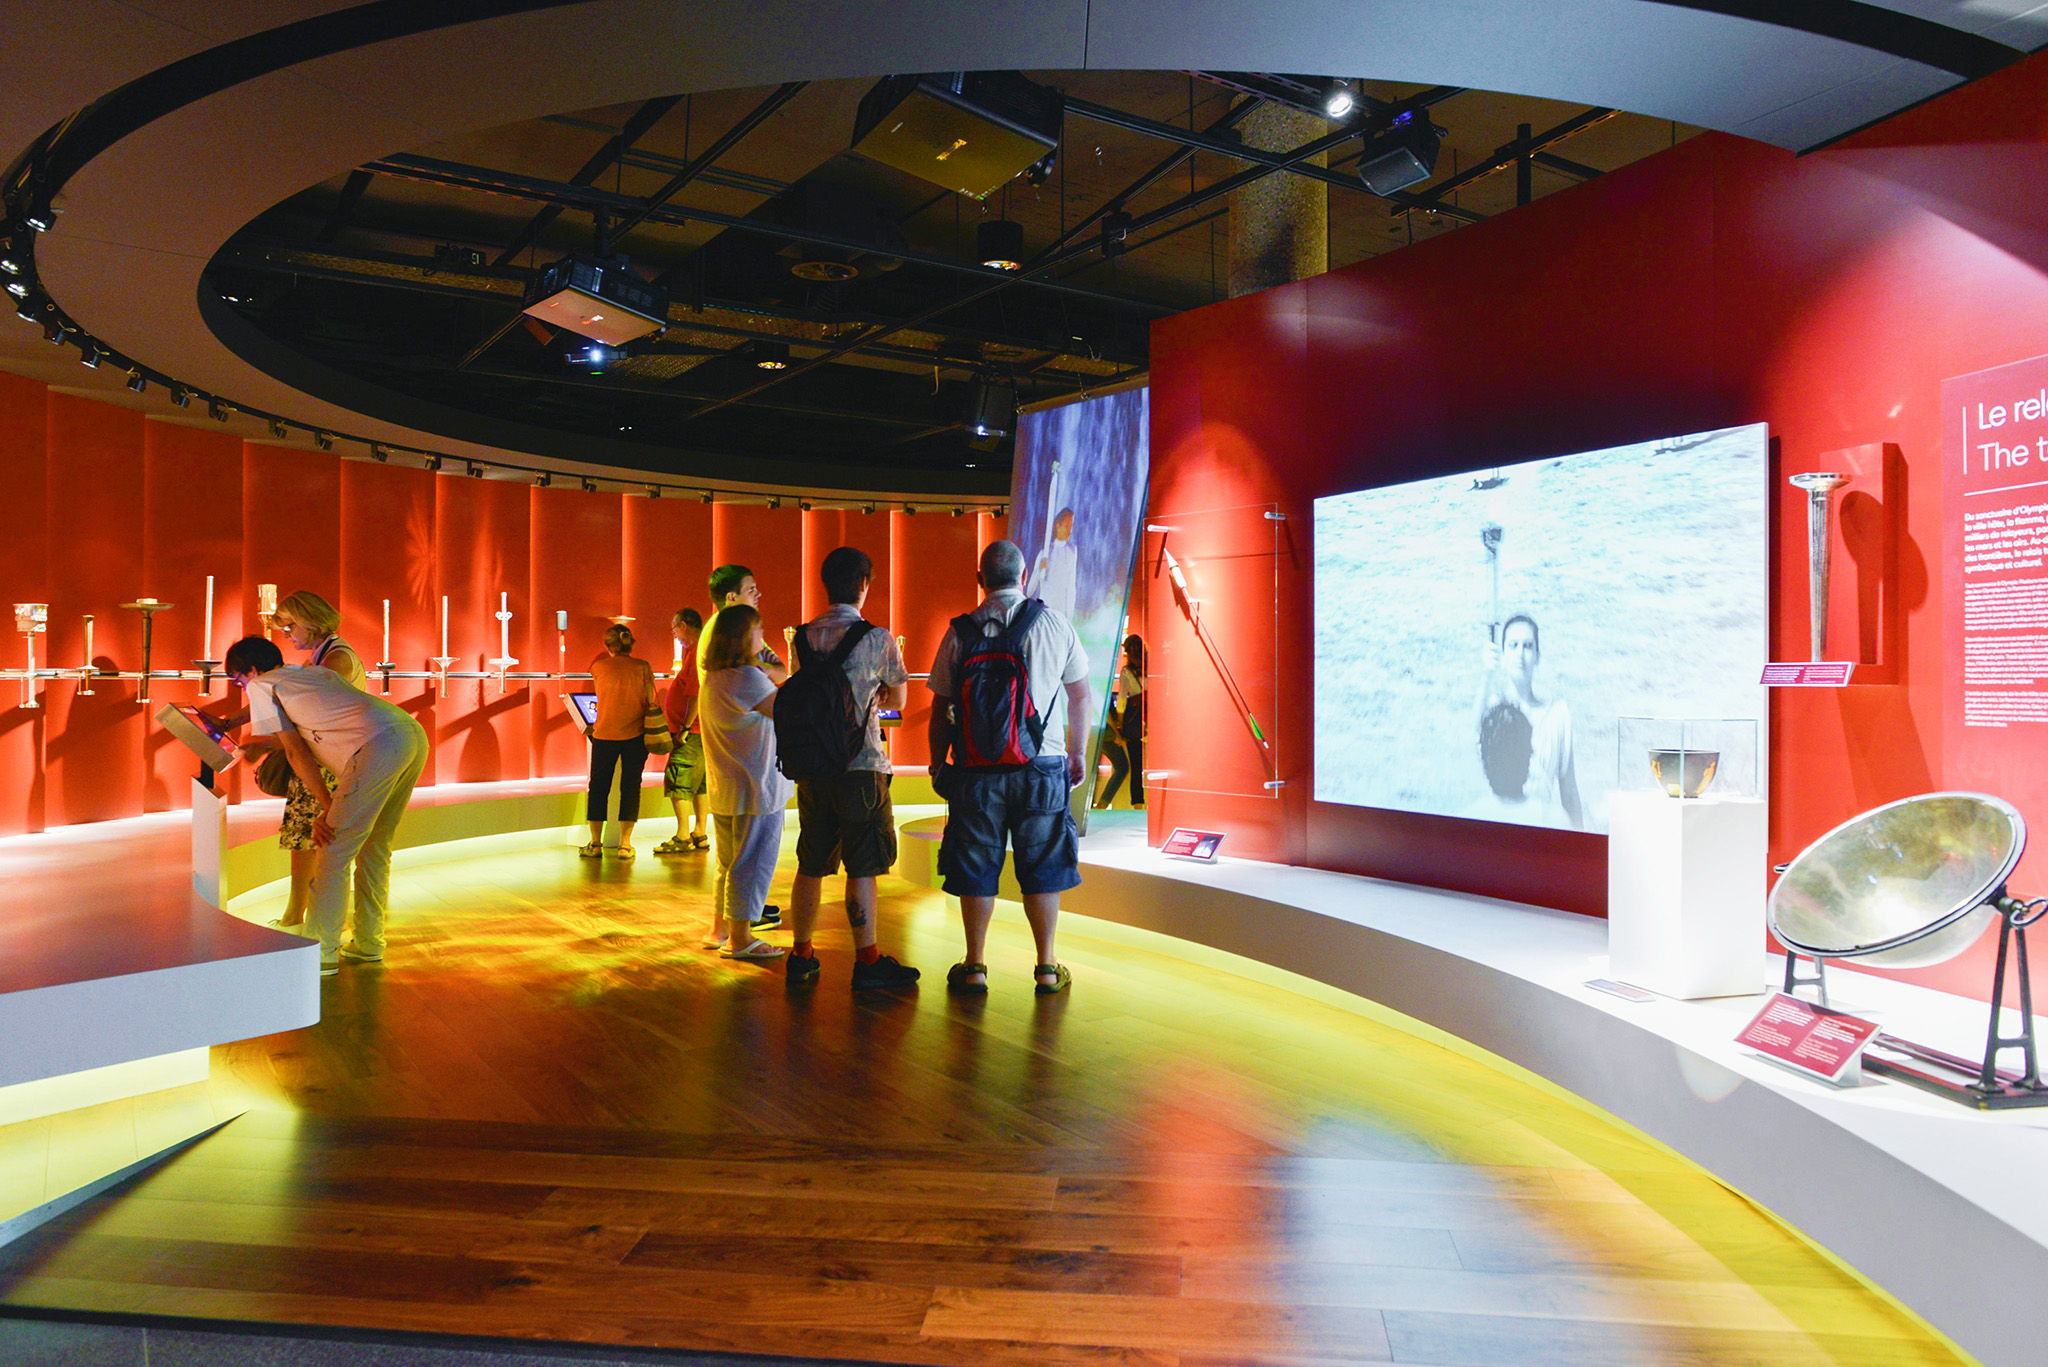 kt_2020_300_Keytours_excursions_Swisstours_lausanne_olympic-museum13_2048_10